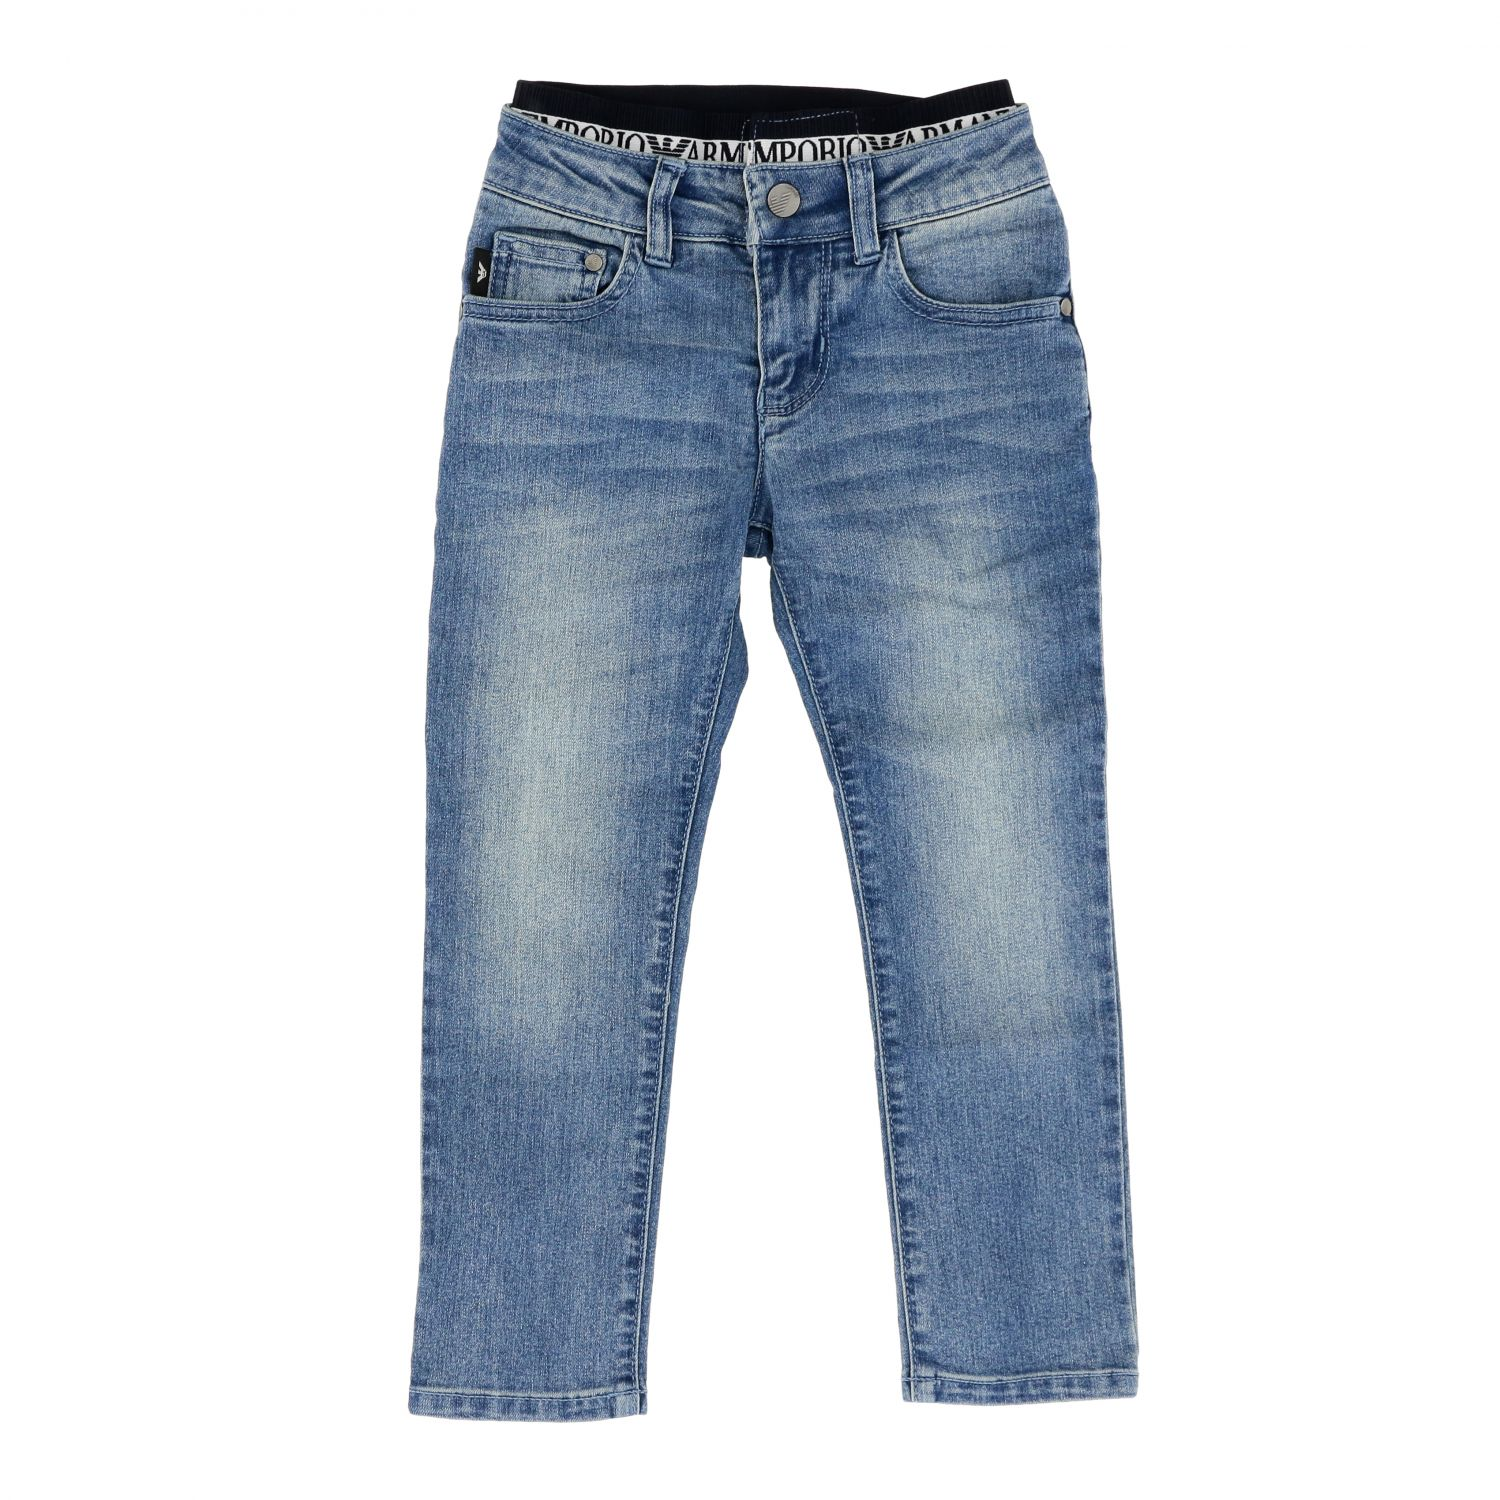 Emporio Armani jeans in used denim with logoed band denim 1